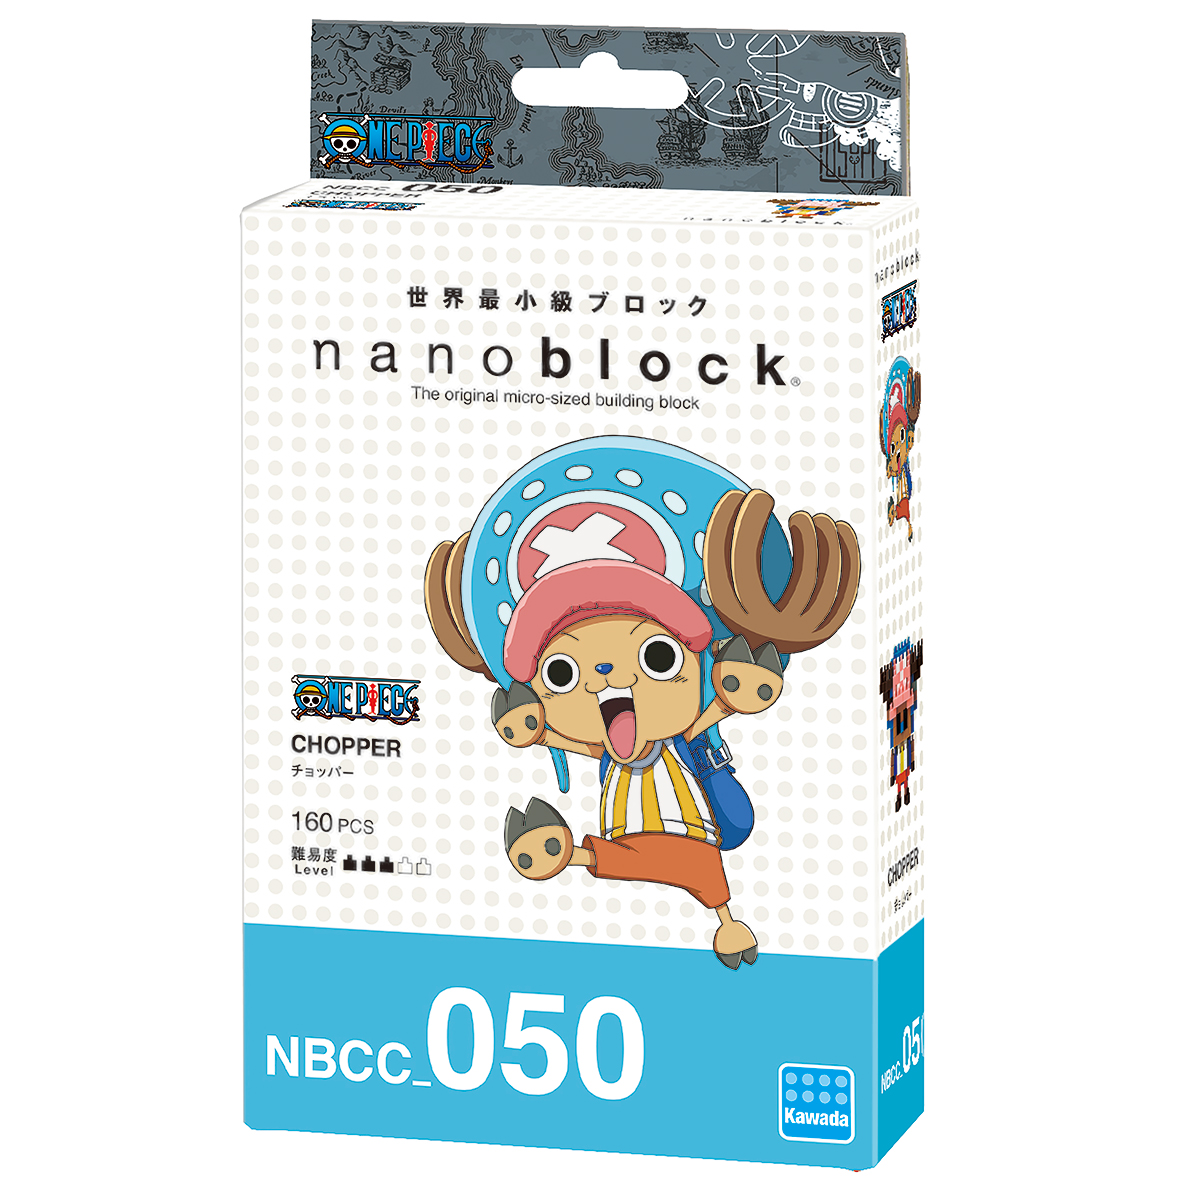 Tony Tony Chopper nanoblock